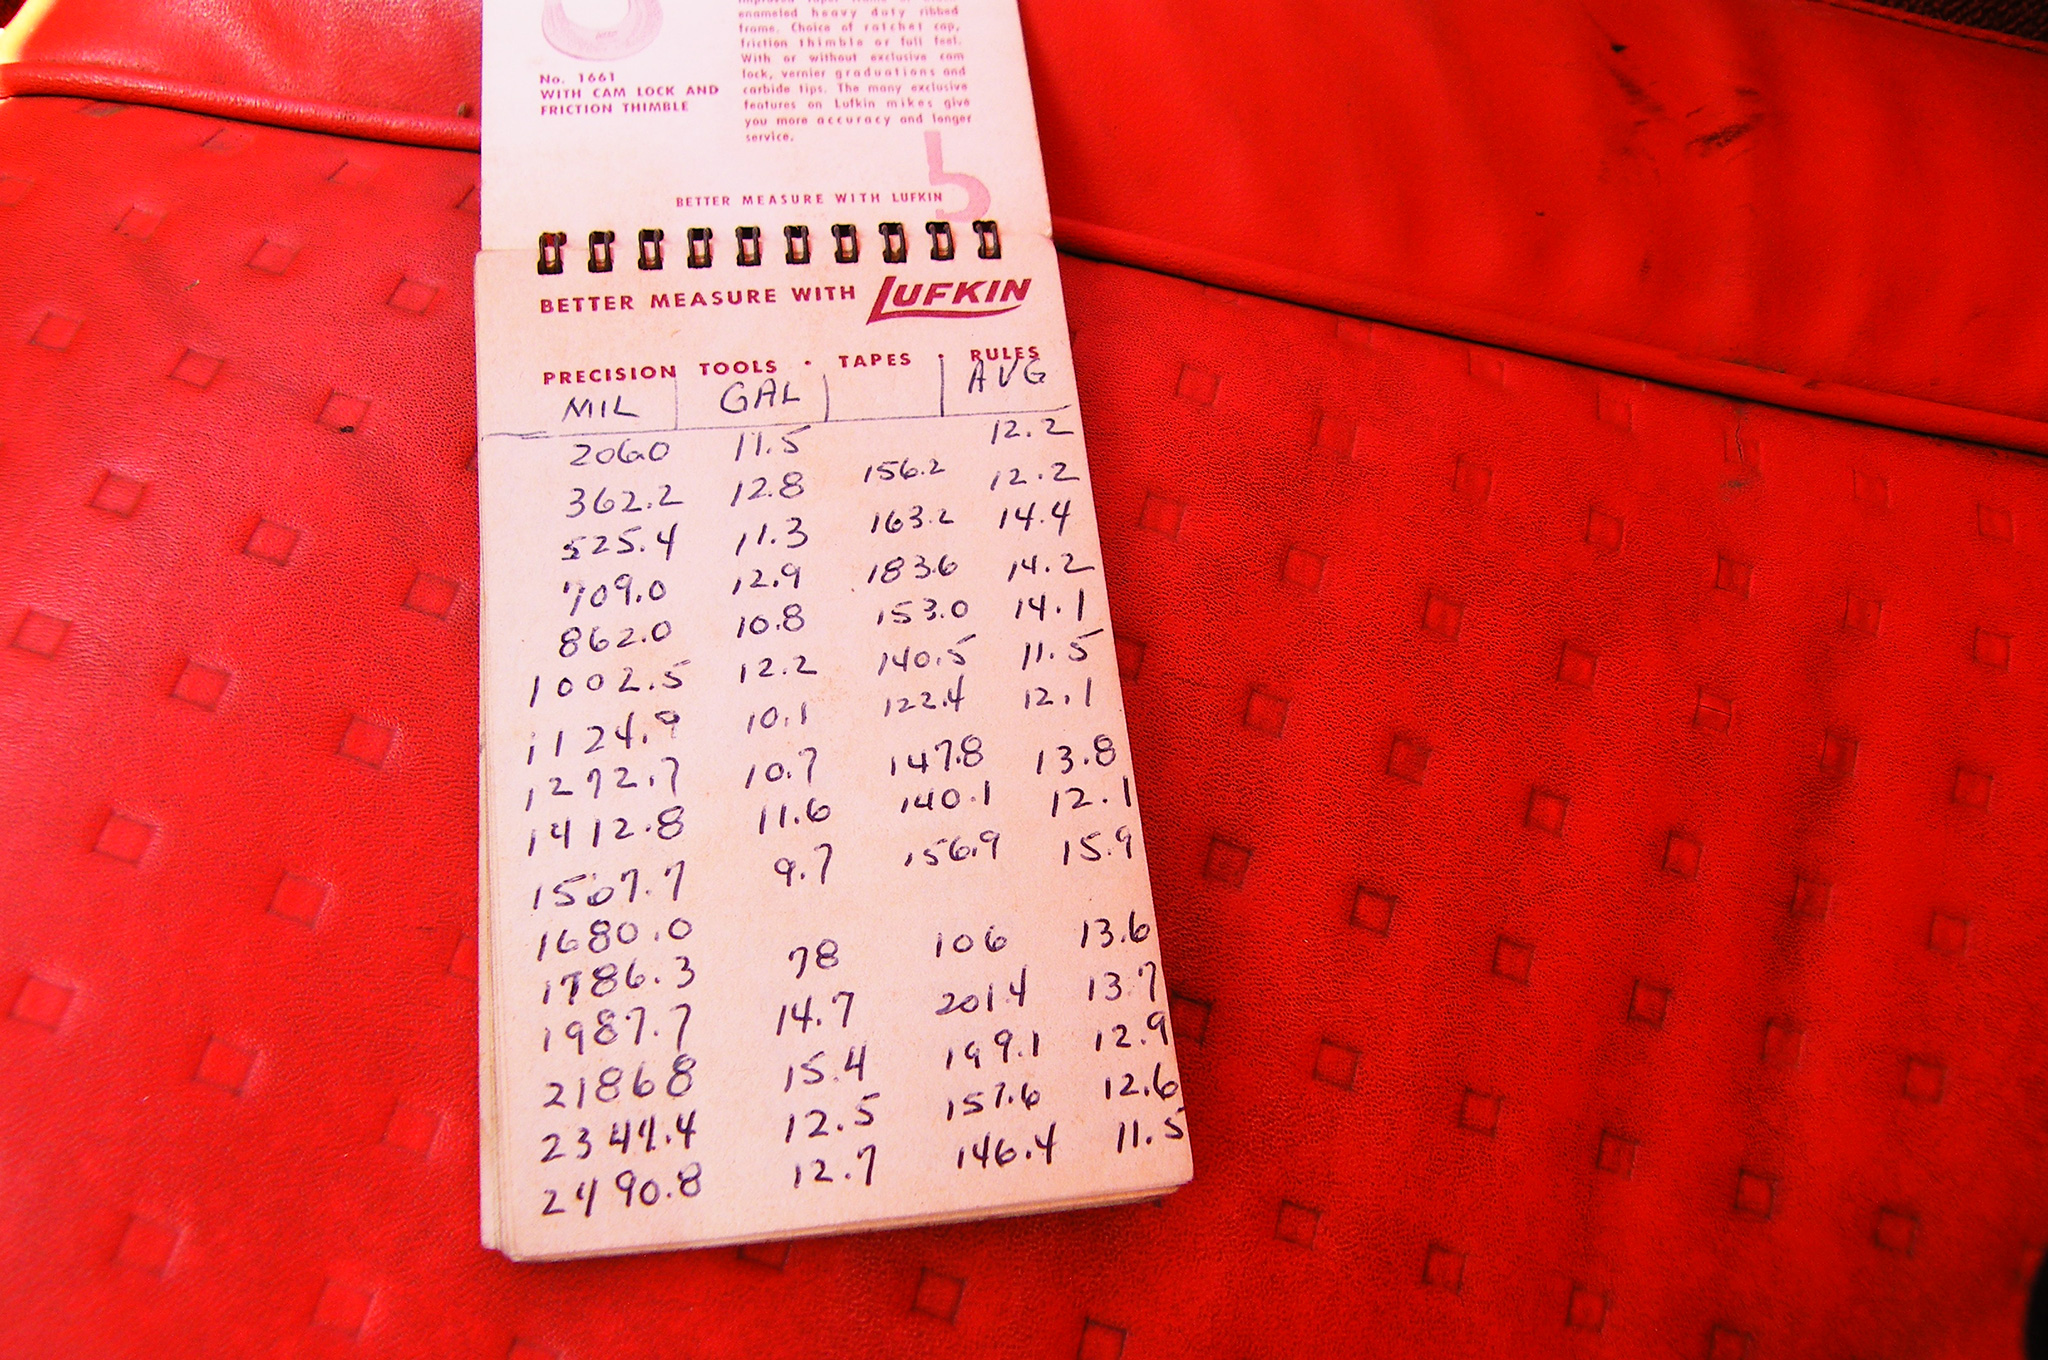 Pohlmann kept track of every gas stop in this small notebook that came with the car.